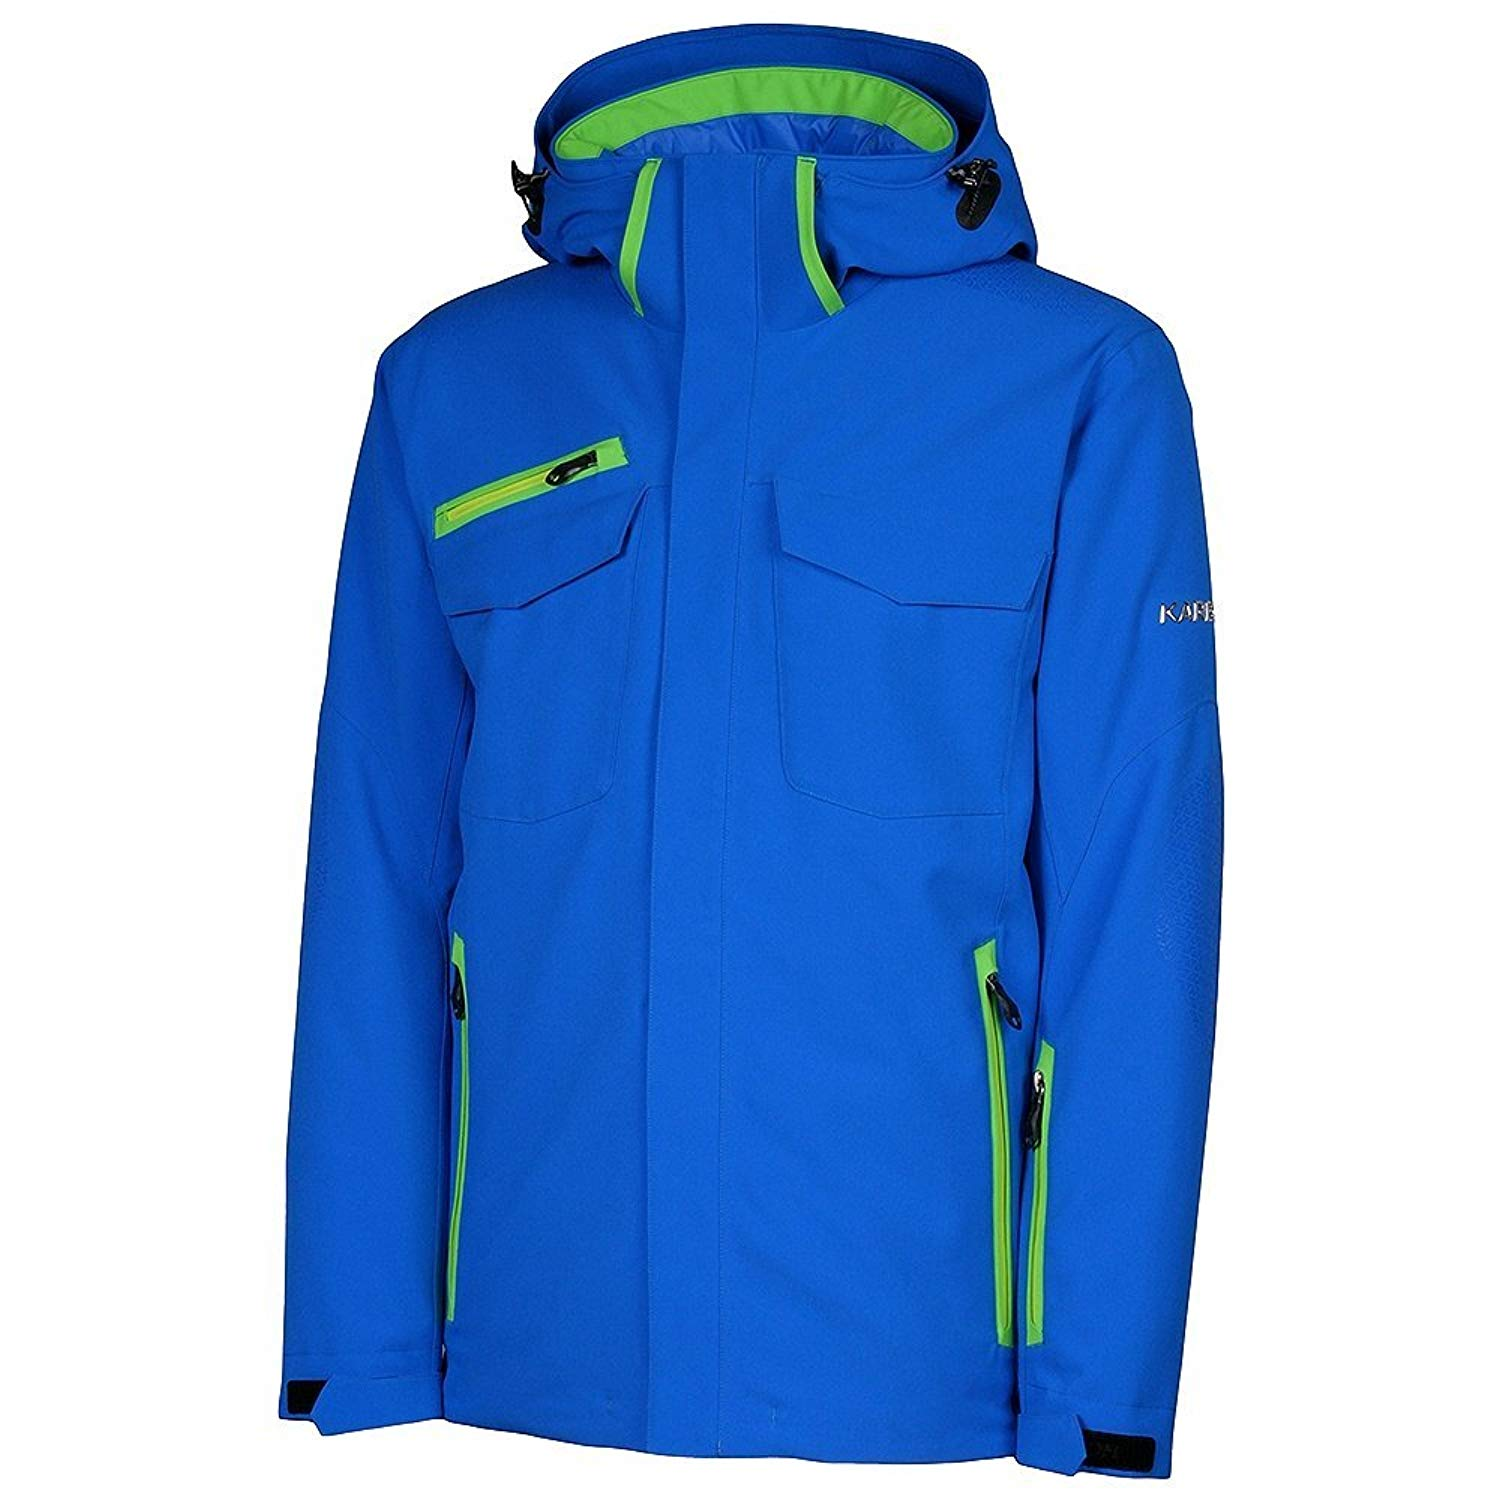 34ee4372f9 Get Quotations · KARBON Apollo Insulated Ski Jacket Mens